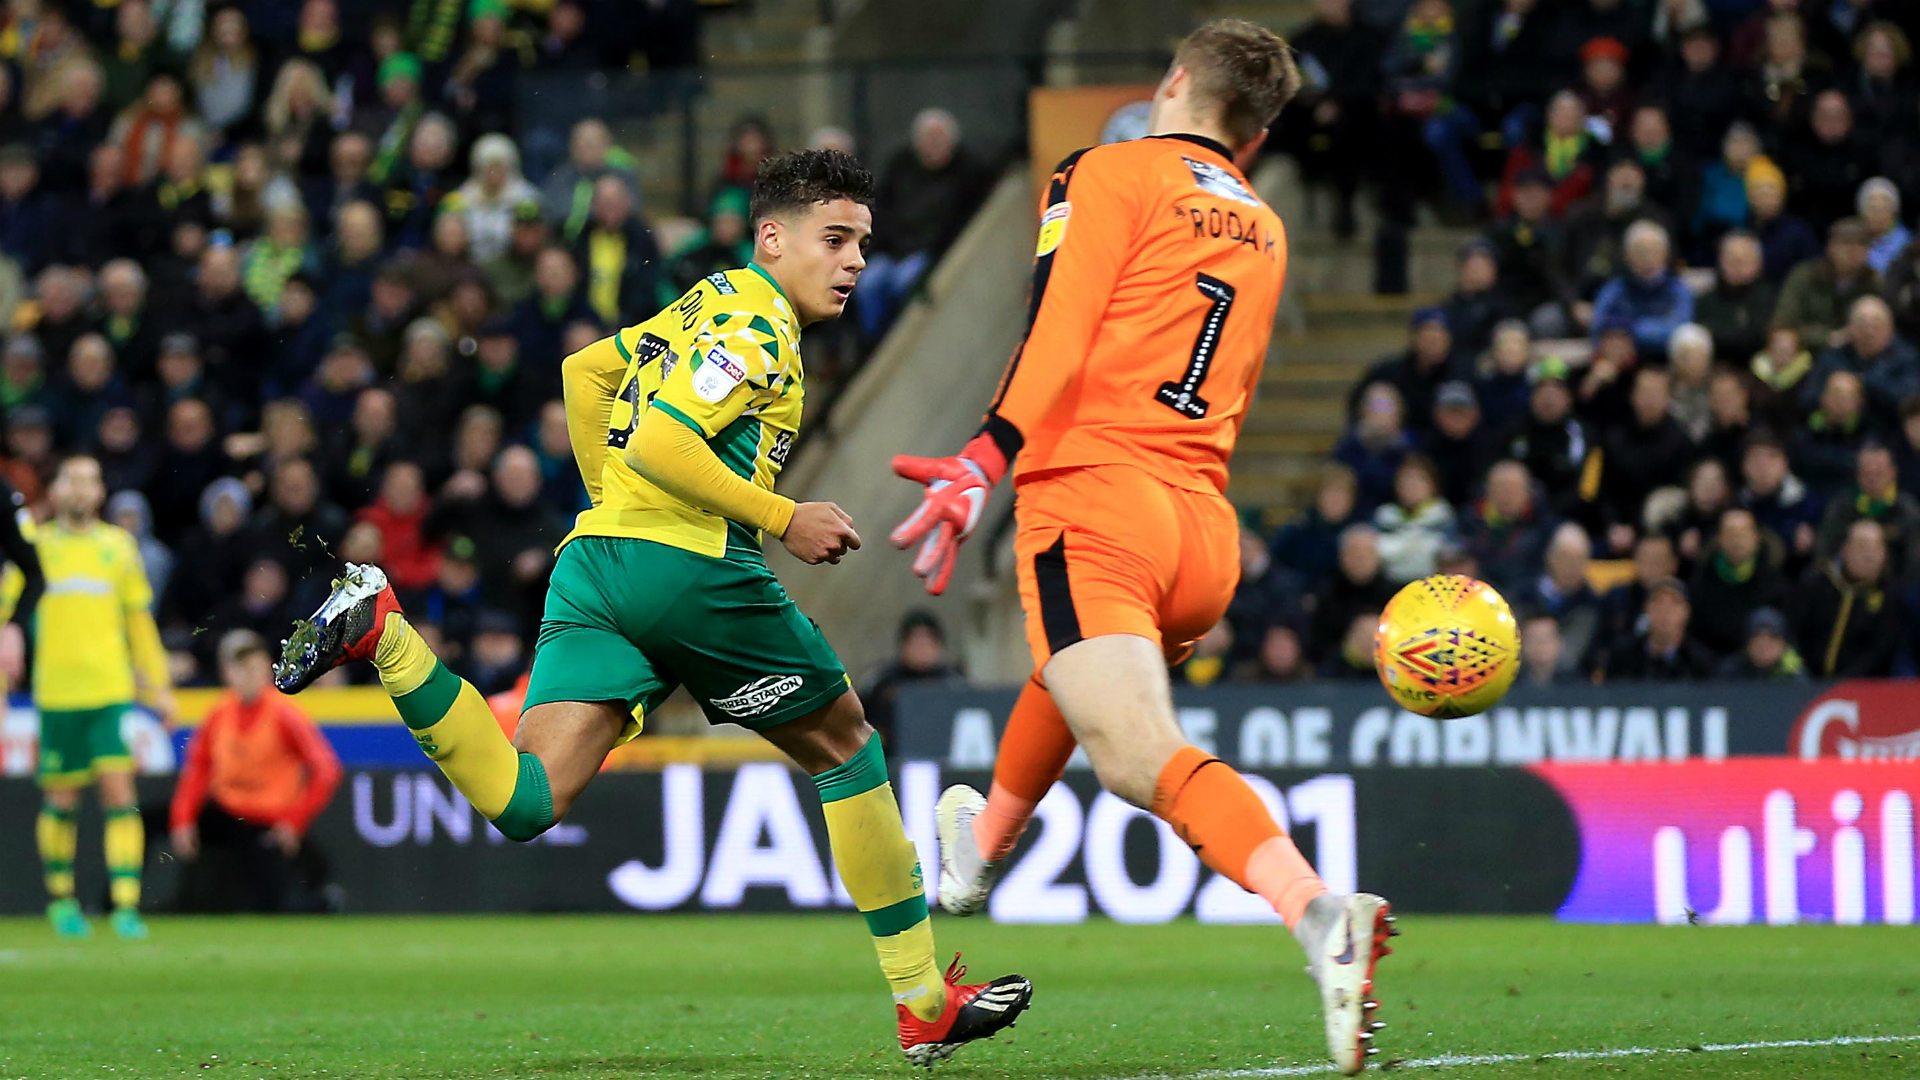 Championship Review: Norwich battle back to top spot, Reading deny Stoke